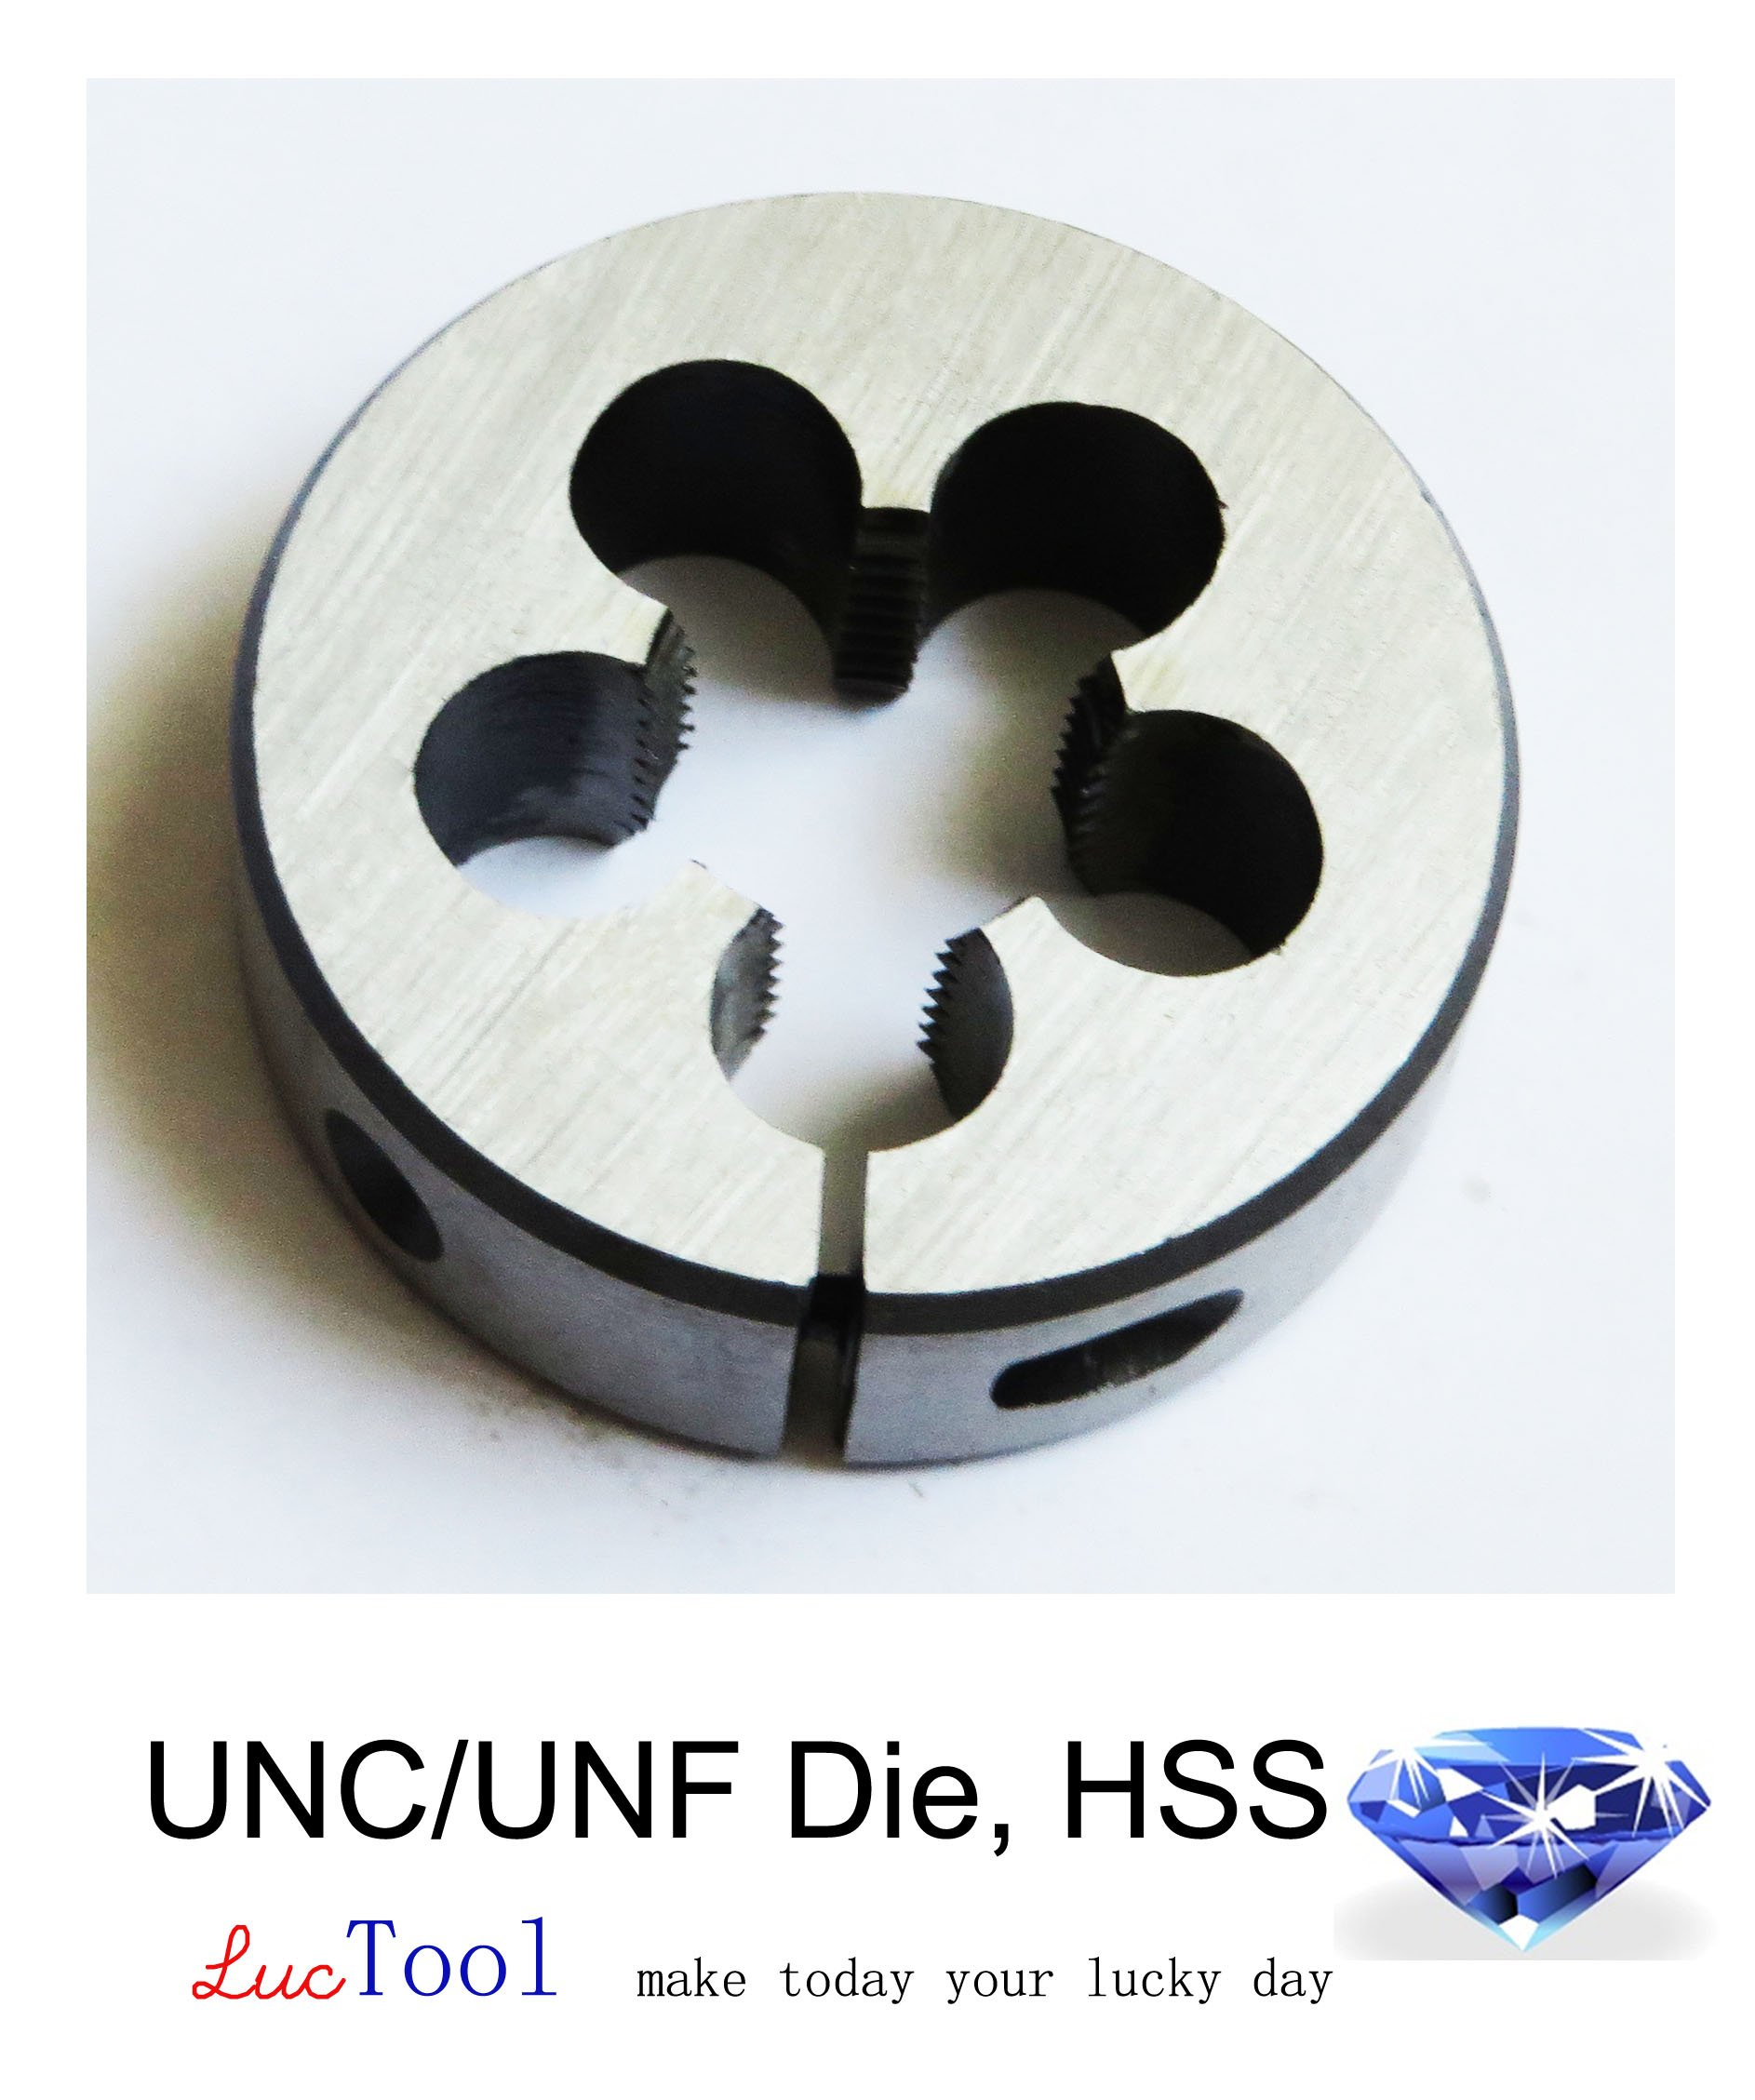 Luctool 9/16-18 UNF Die Round Adjustable Split Threading Die 2'' OD Inch Thread HSS Tool. Luctool Provides Premium Quality Hand Tools for Metal Threading. by Luctool